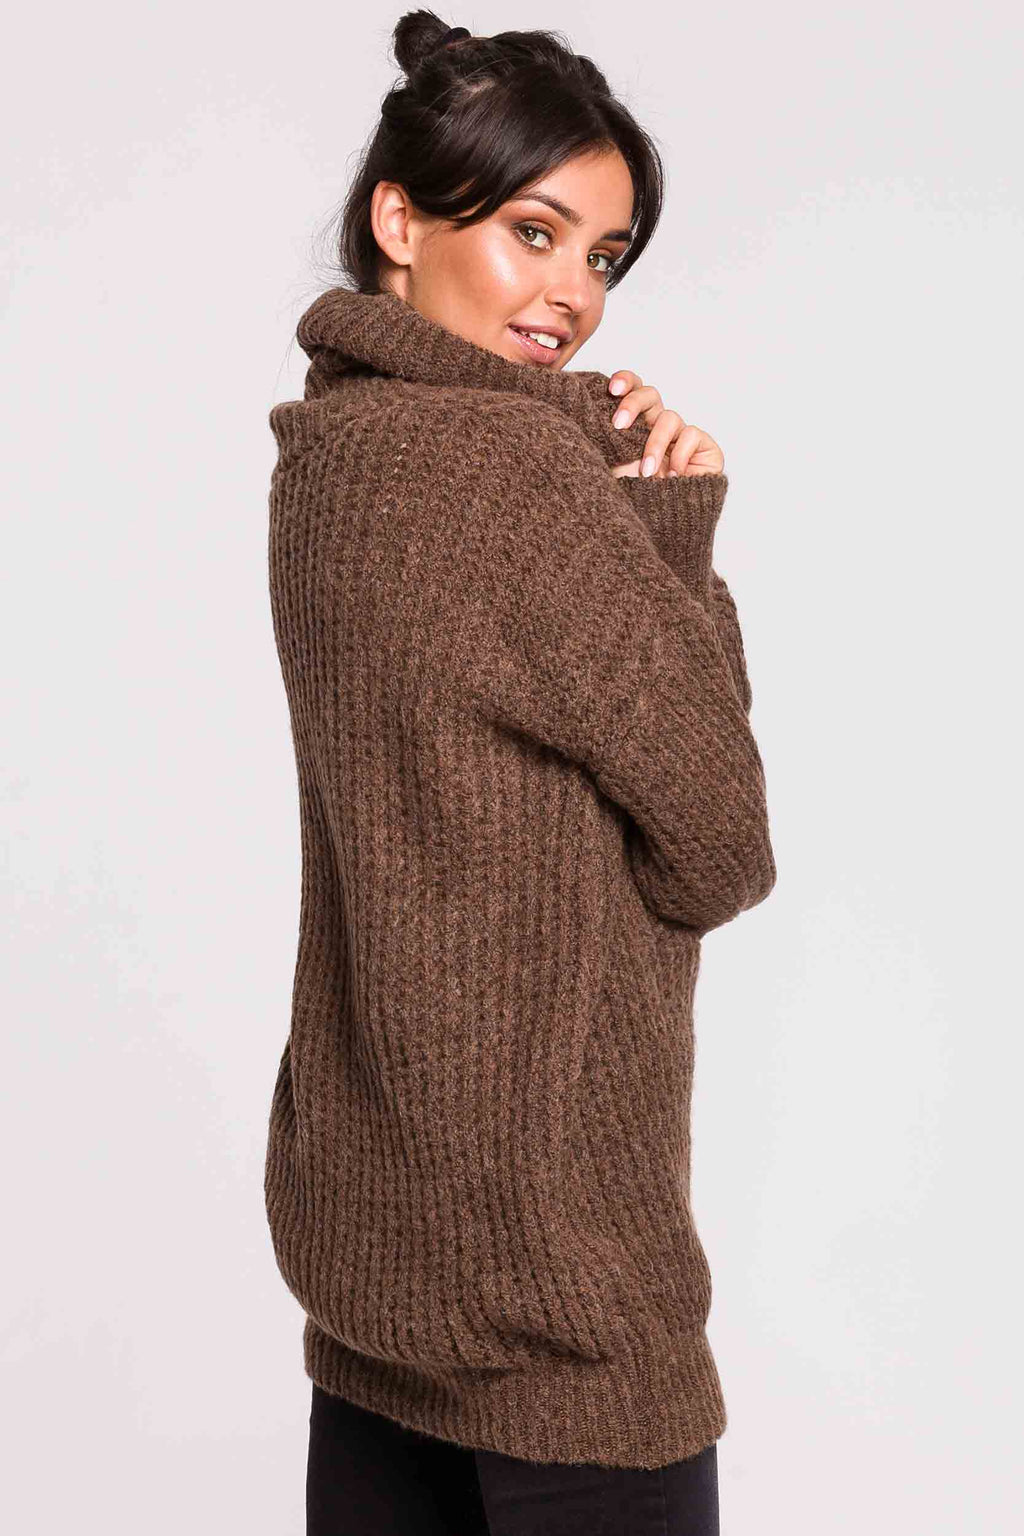 Latte Turtleneck Sweater Dress - So Chic Boutique